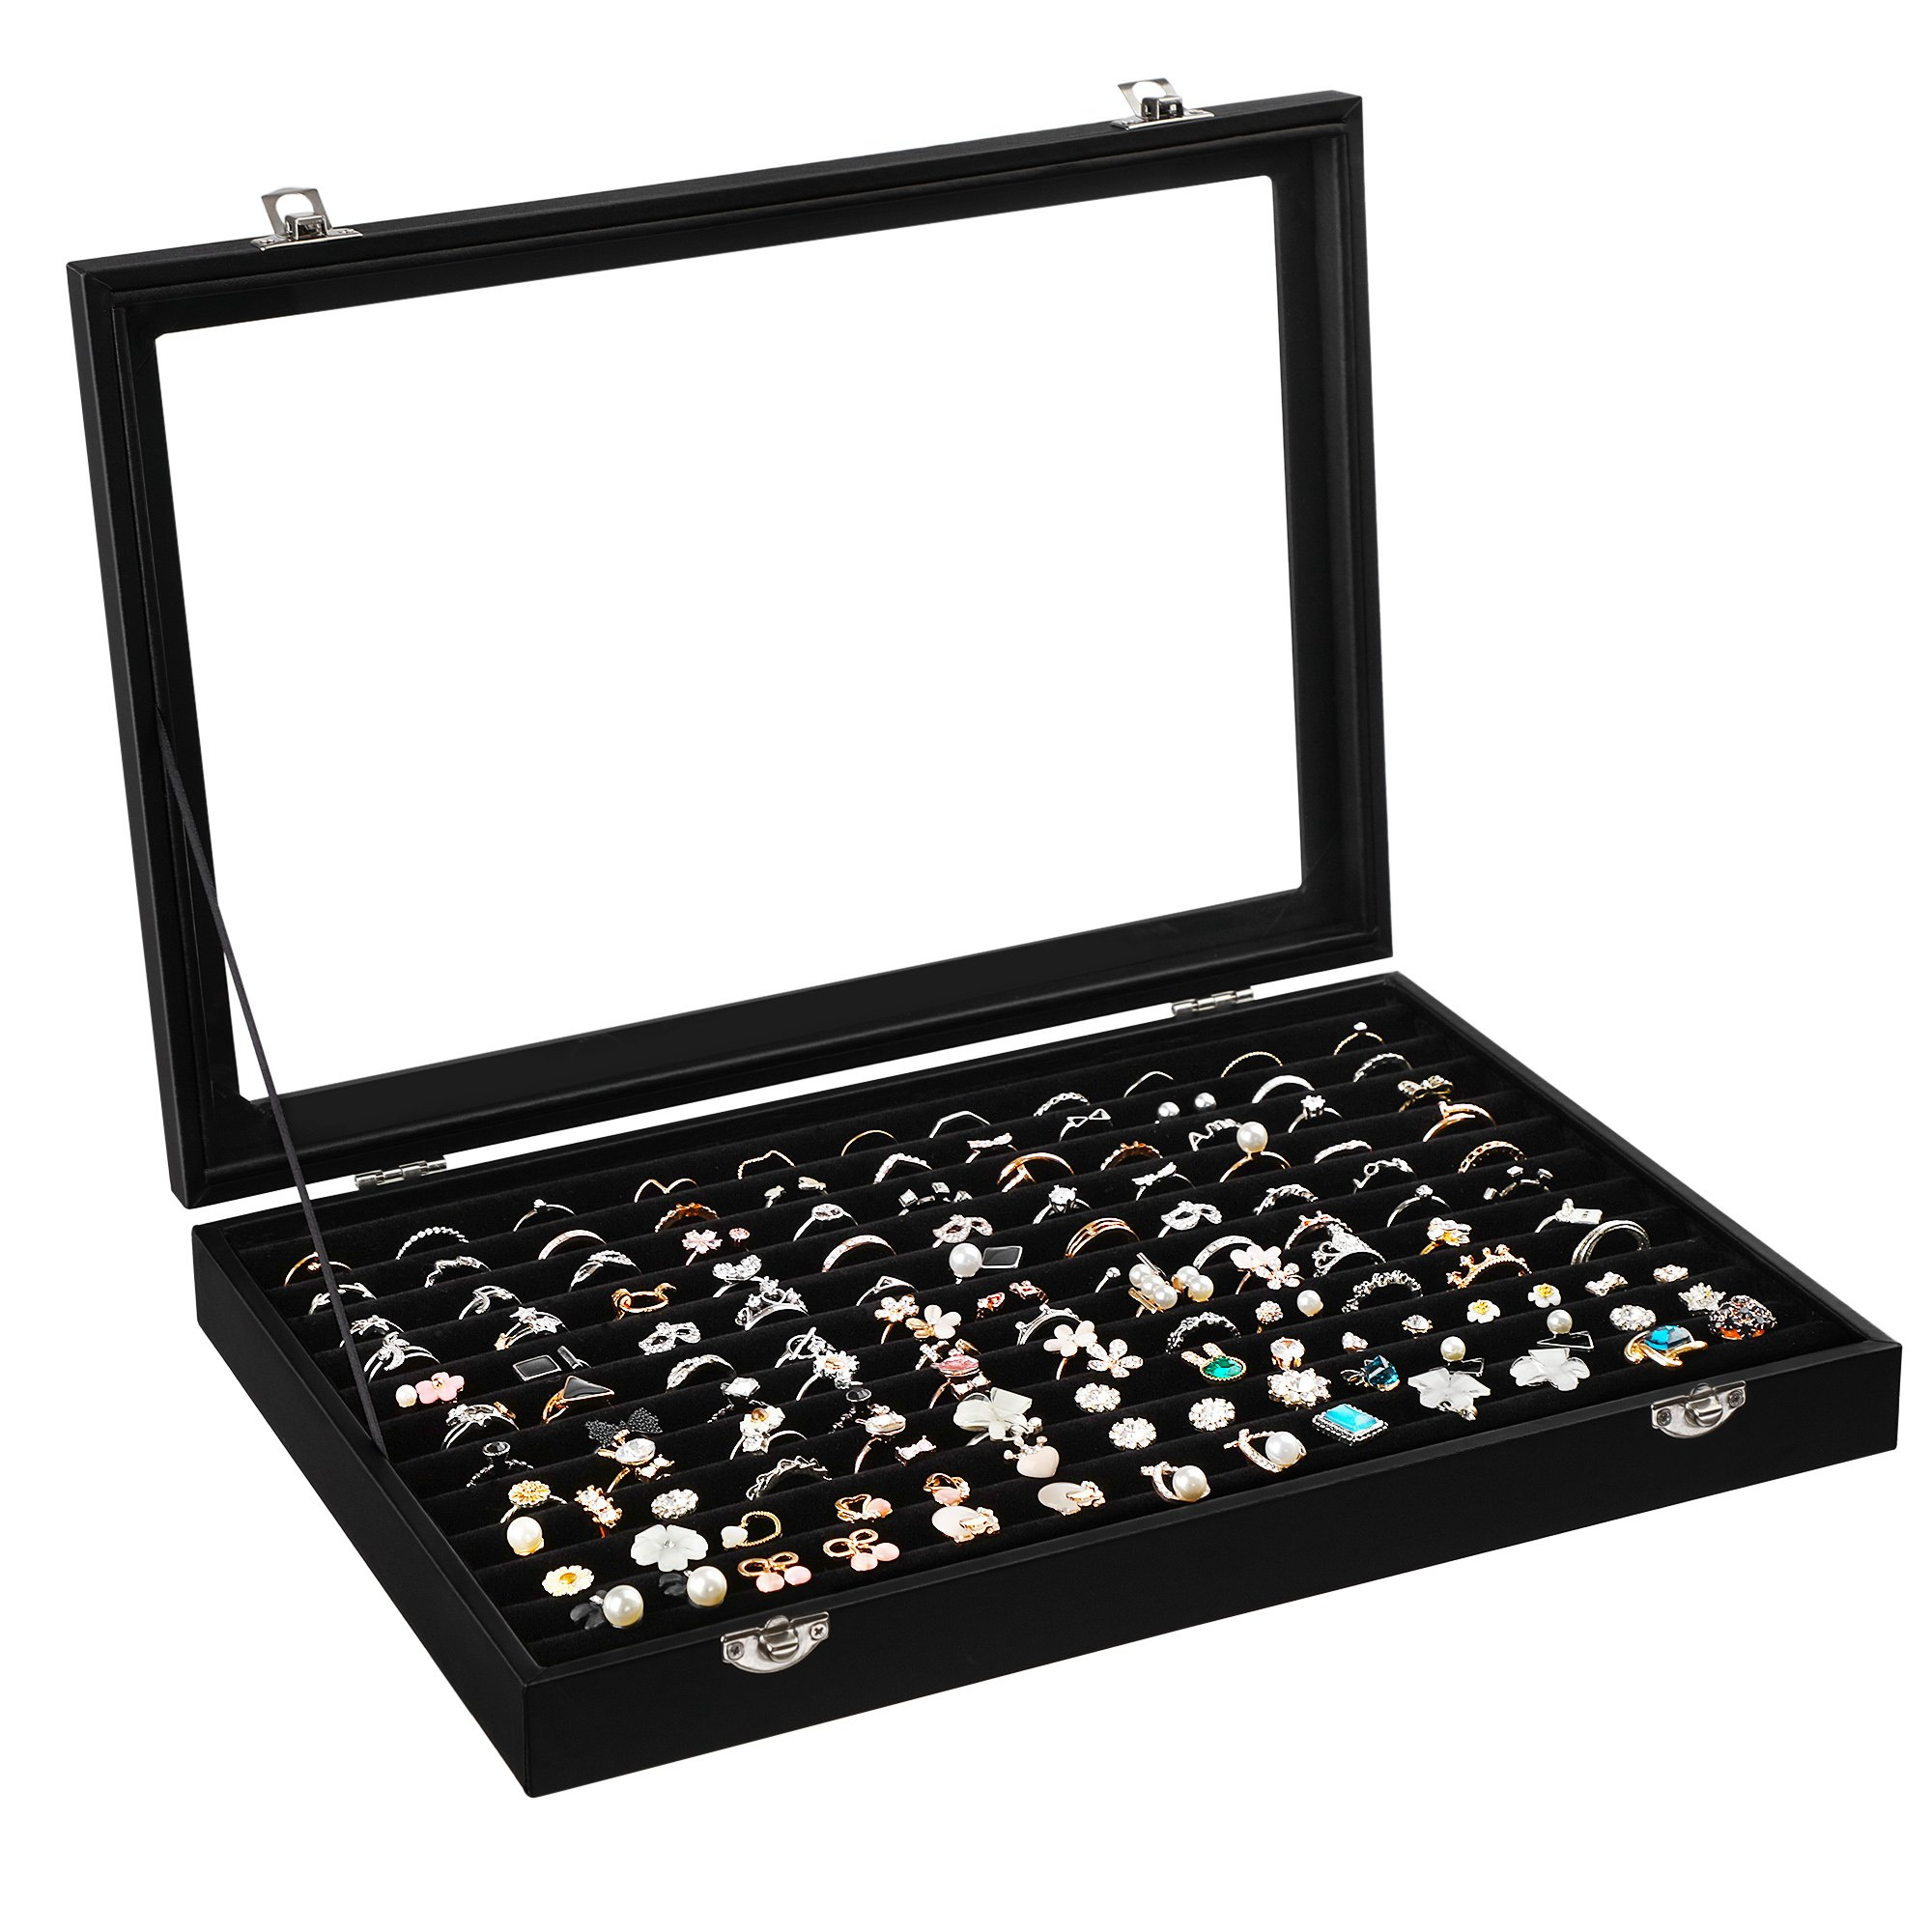 SONGMICS 100 Ring Display Case 11 Rows Jewerly Organizer Earring Showcase Box with Glass Lid Black UJDS301 by SONGMICS